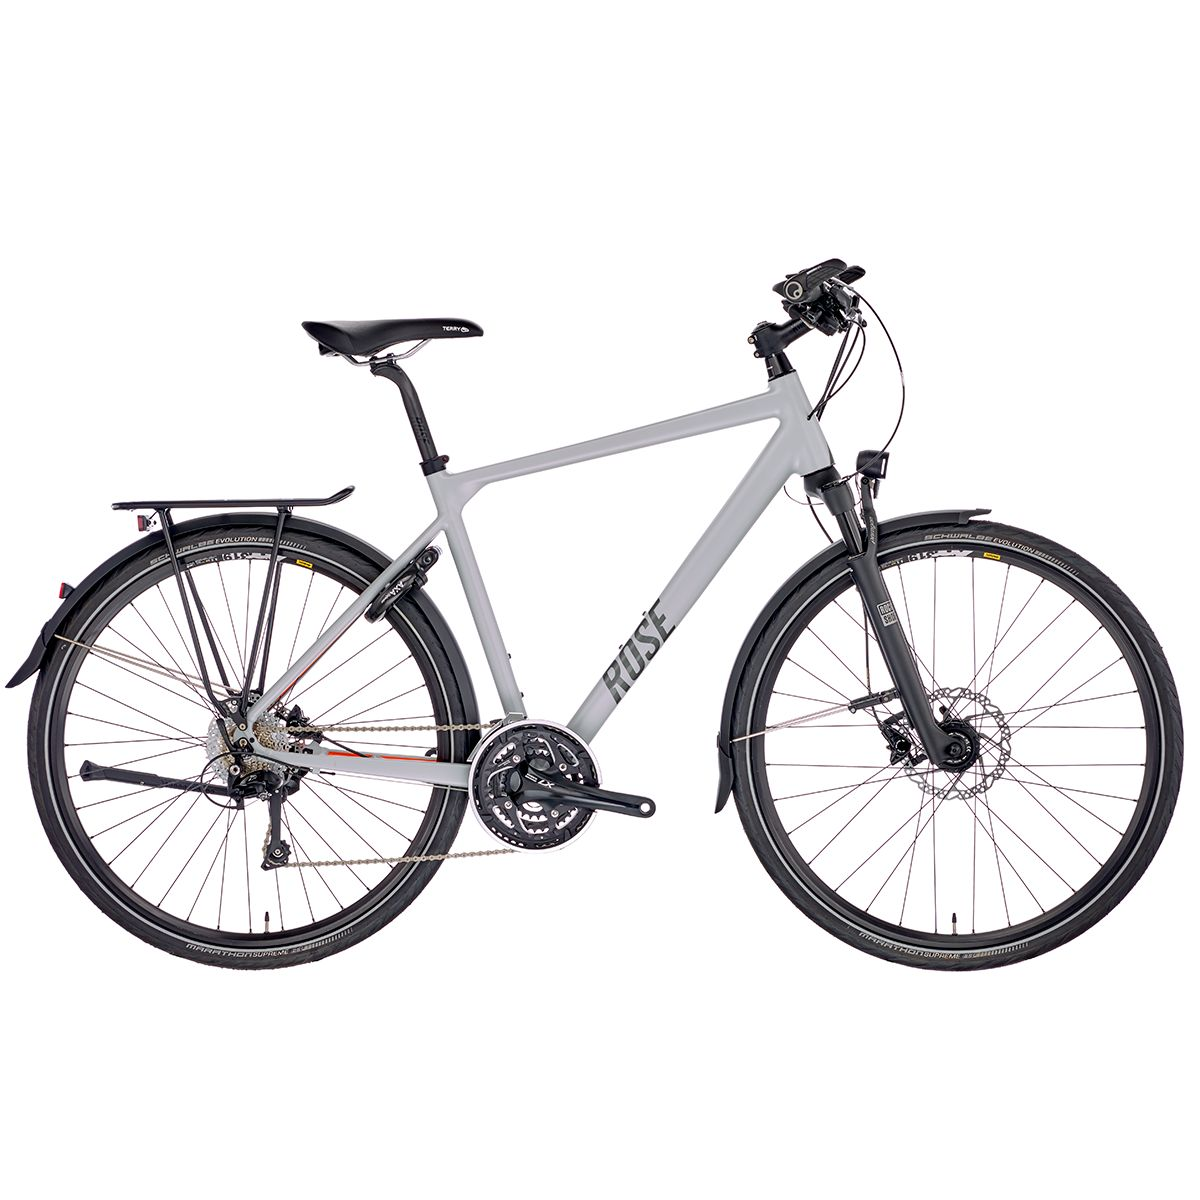 ROSE MULTISPORT LX MEN showroom bike | City